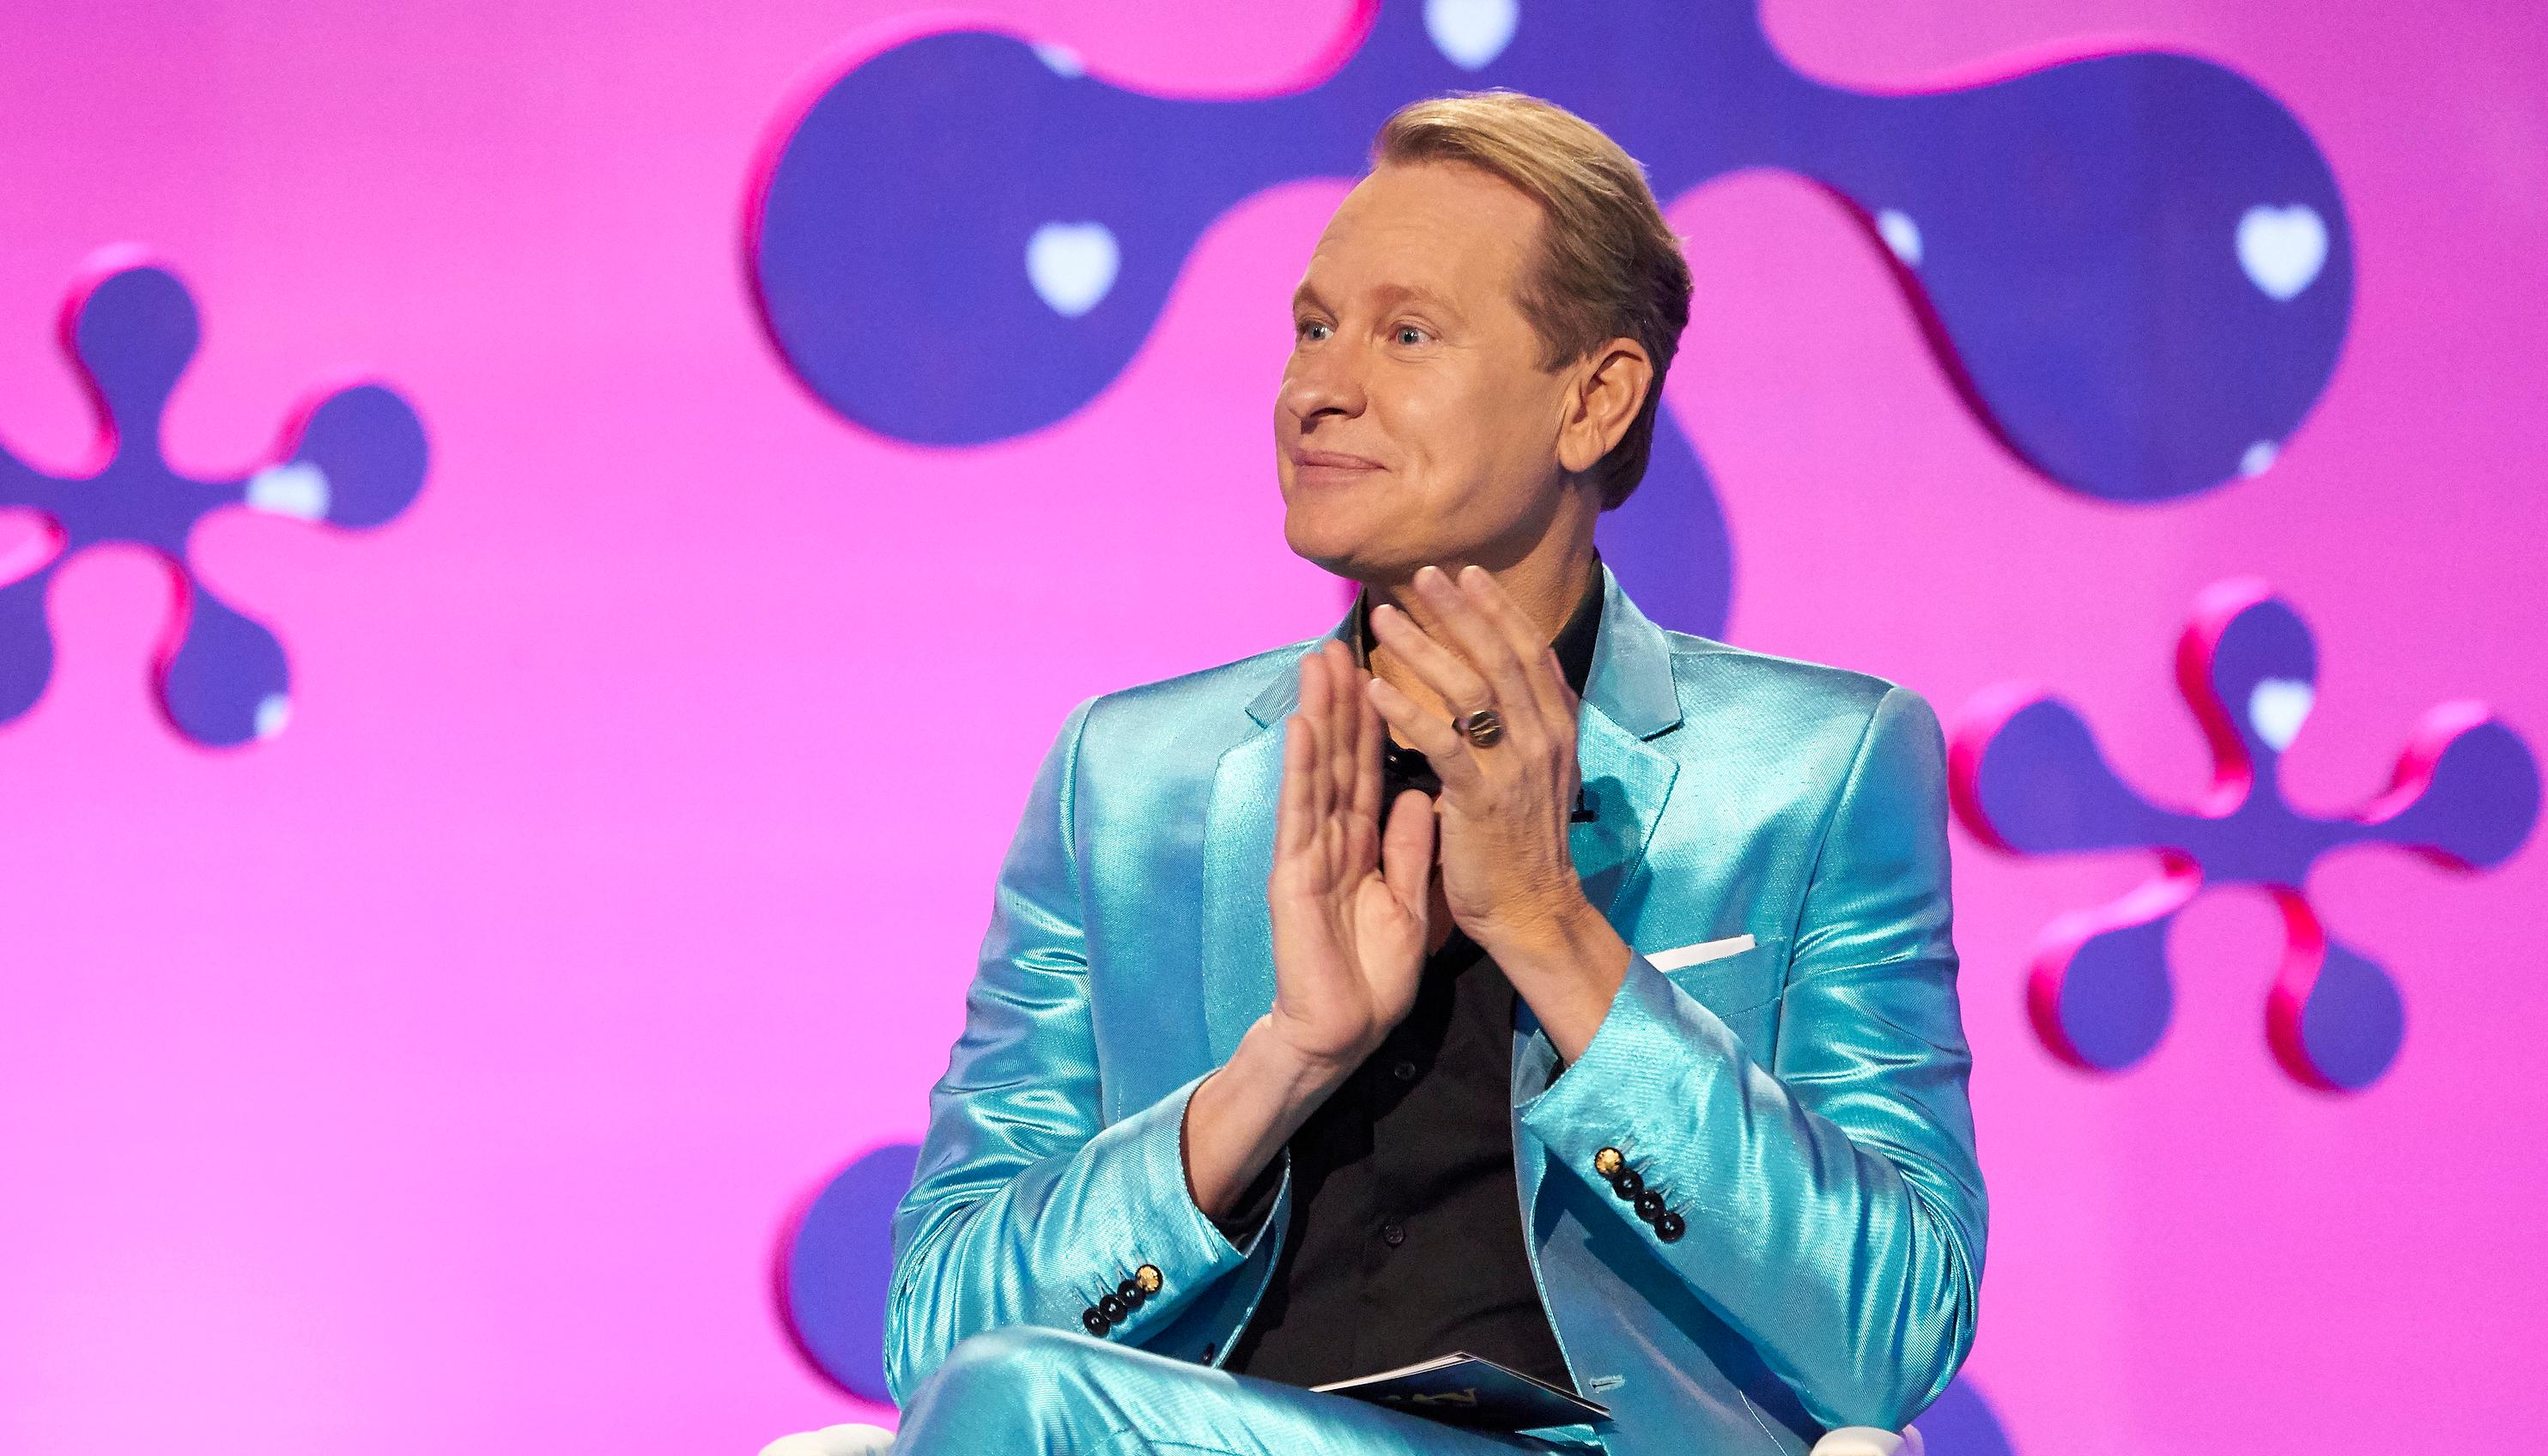 Carson Kressley on 'The Celebrity Dating Game'